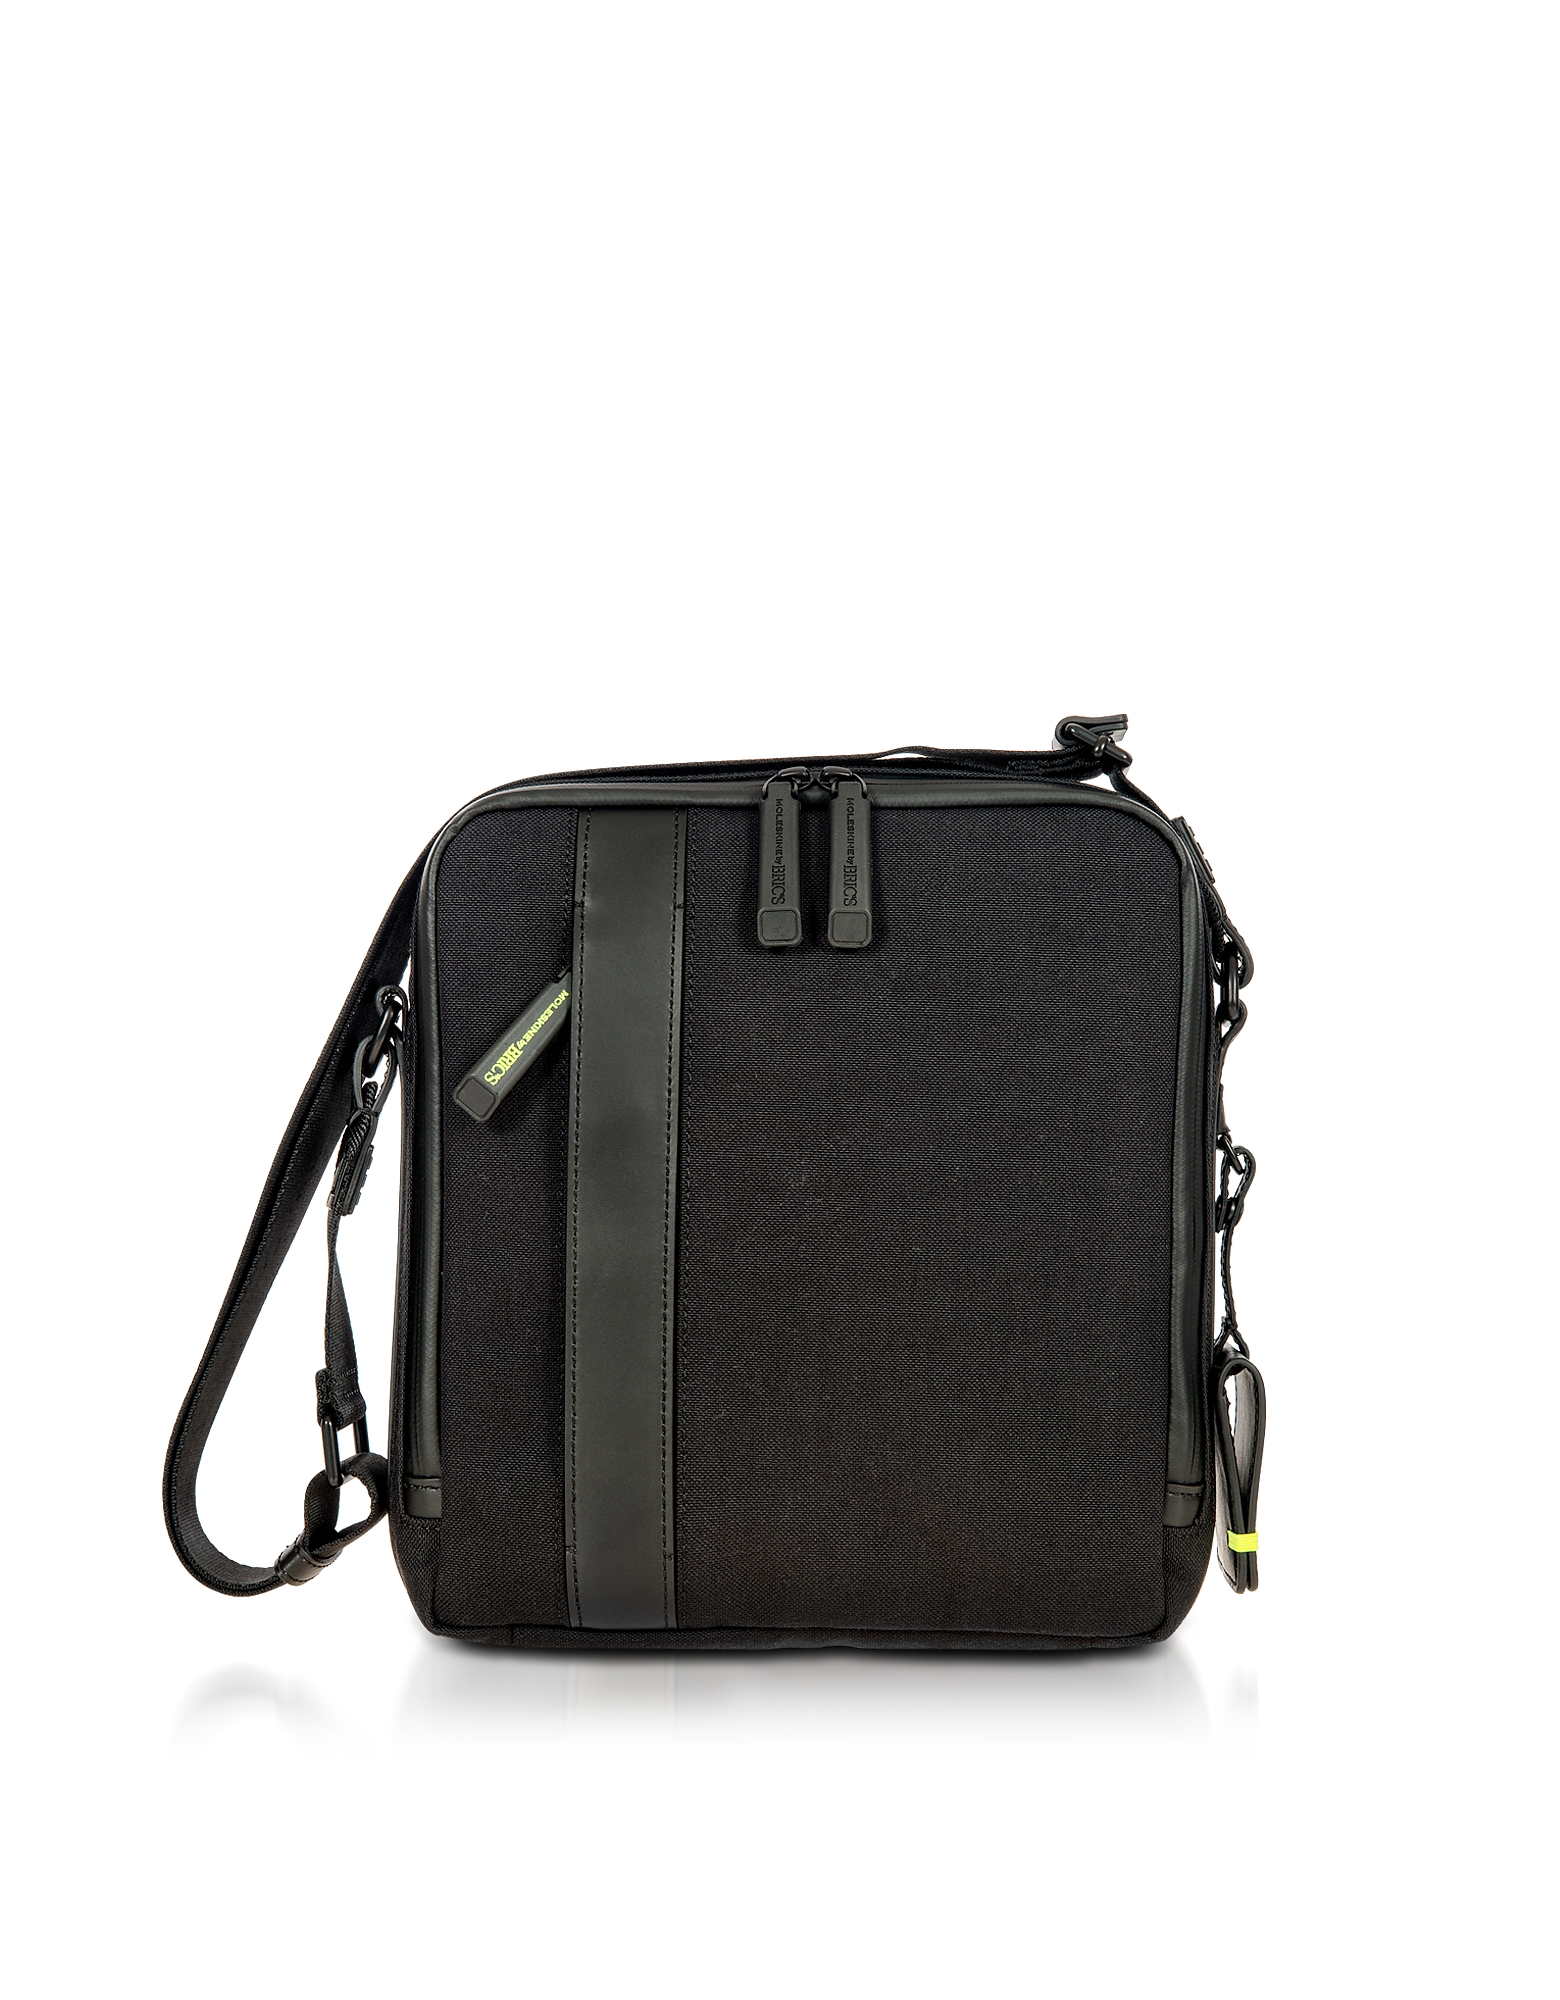 Bric's Travel Bags, Black Nylon and Leather Crossbody Bag